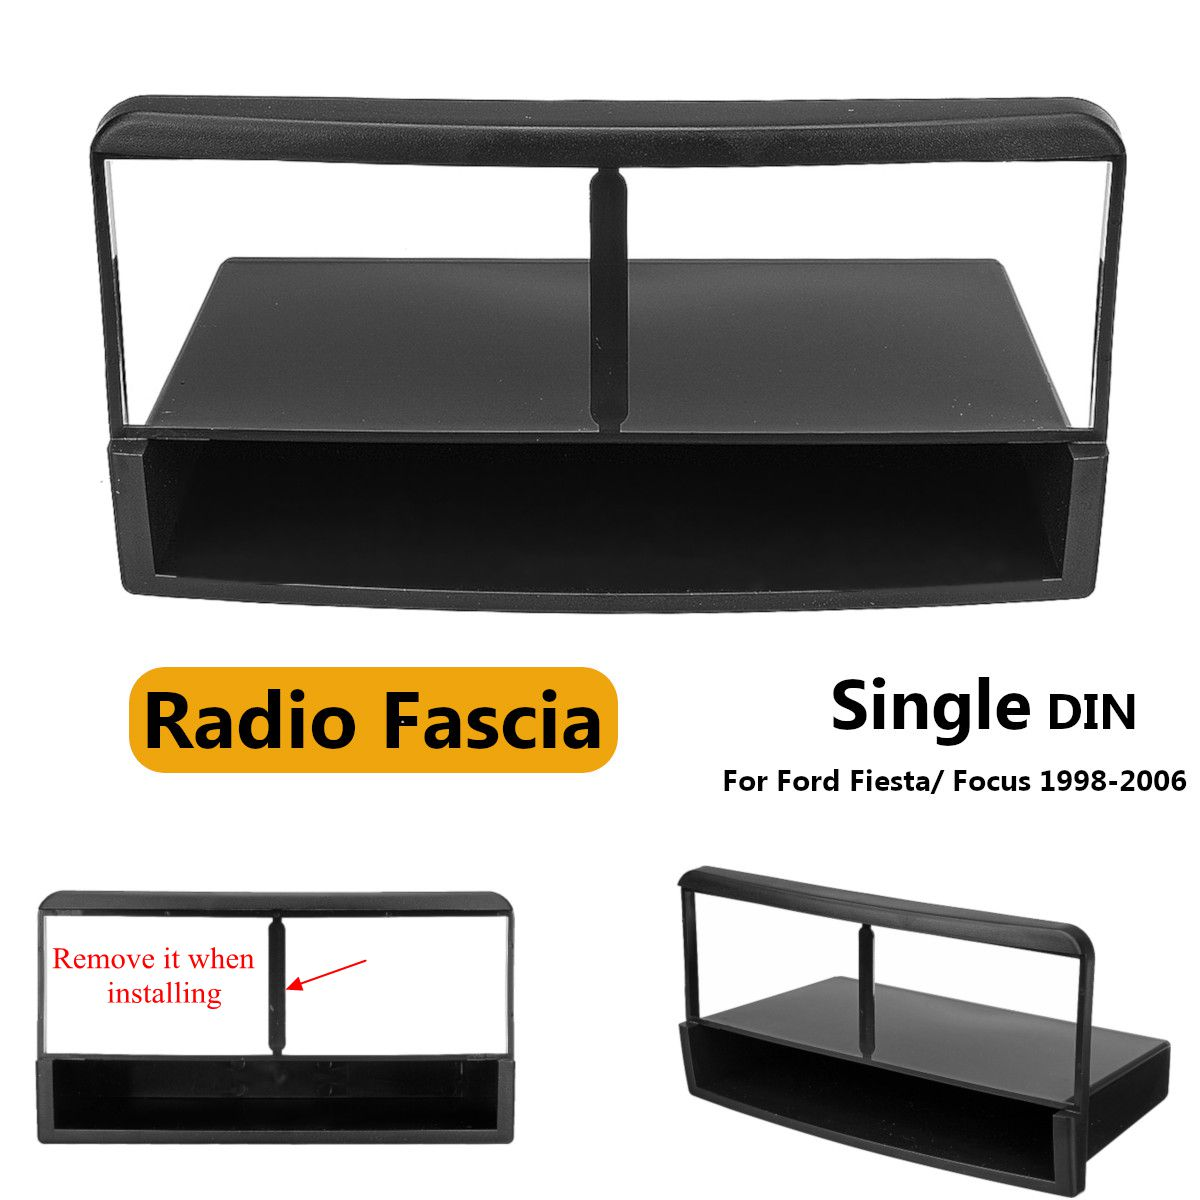 Car Stereo Radio DVD Fascia Panel Plate Frame 1 Din Panel Audio Dash Mount Kit Adapter for Ford for Fiesta for Focus 1998-2006 image